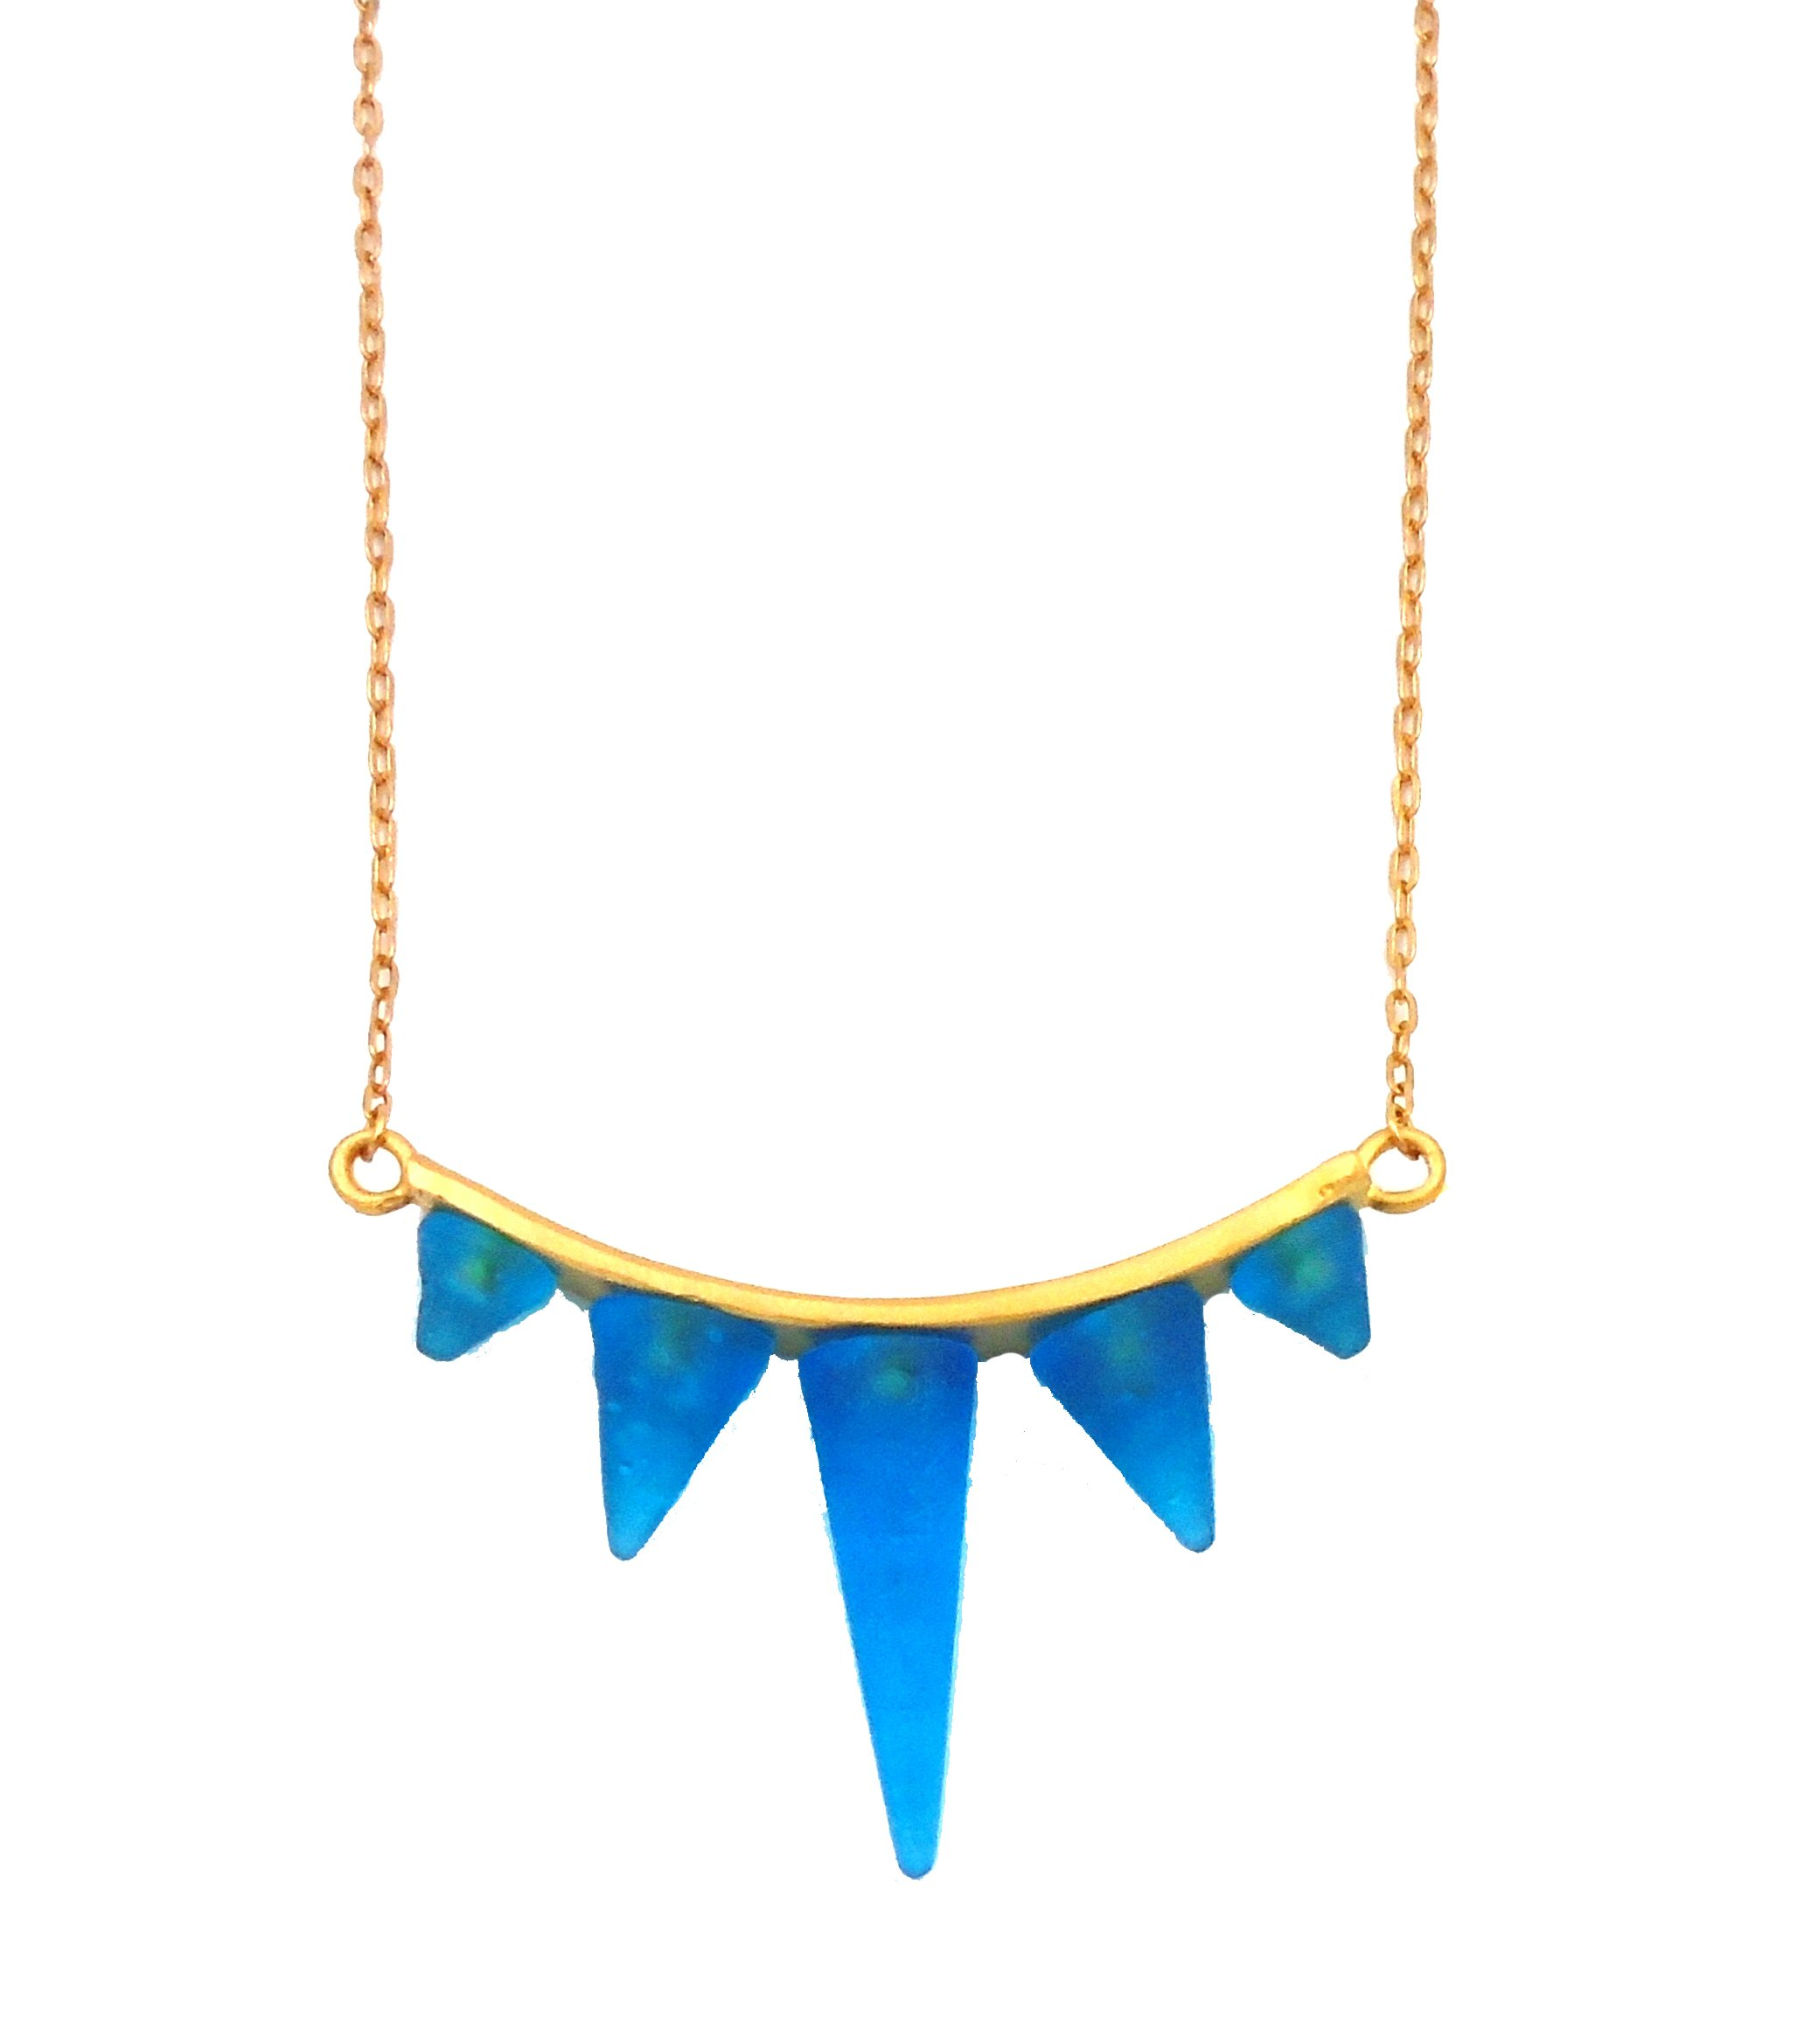 Michael Vincent Michaud- Glass ''Spike Bar Necklace'' in Turquoise Blue by Michael Vincent Michaud